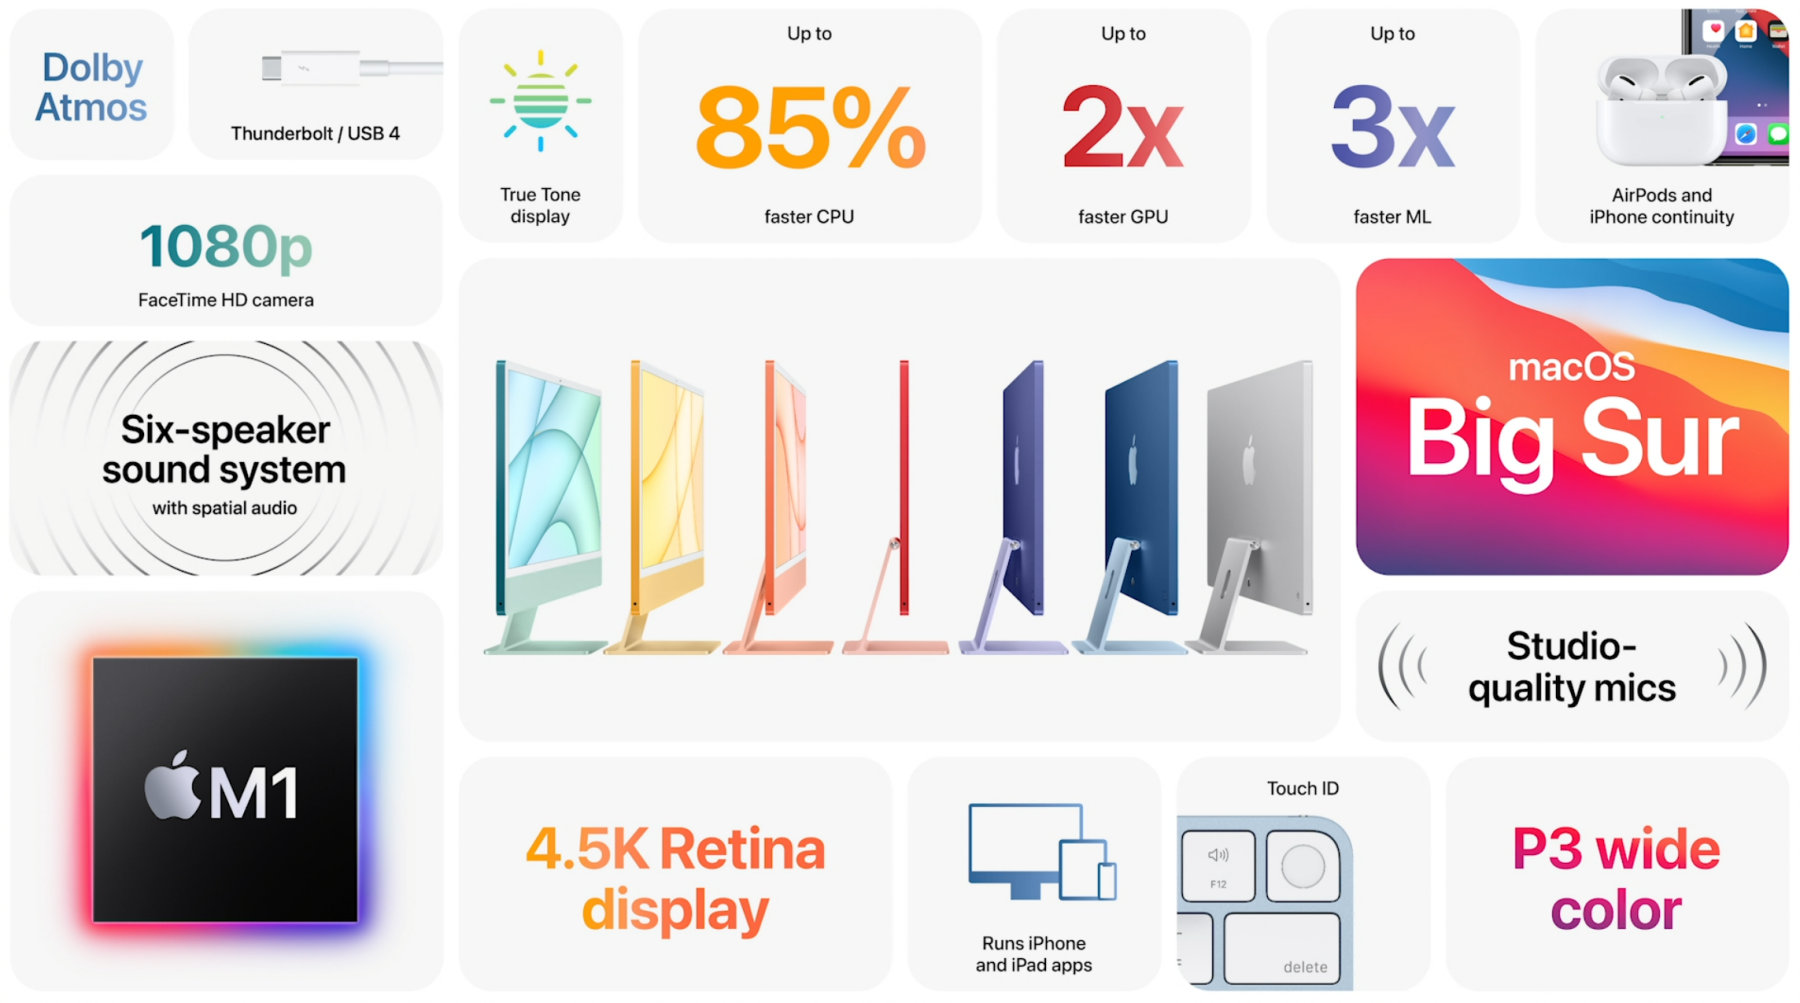 Apple announces new iMac with M1 chip and 4.5K retina display, available starting at 1299 USD – VideoCardz.com